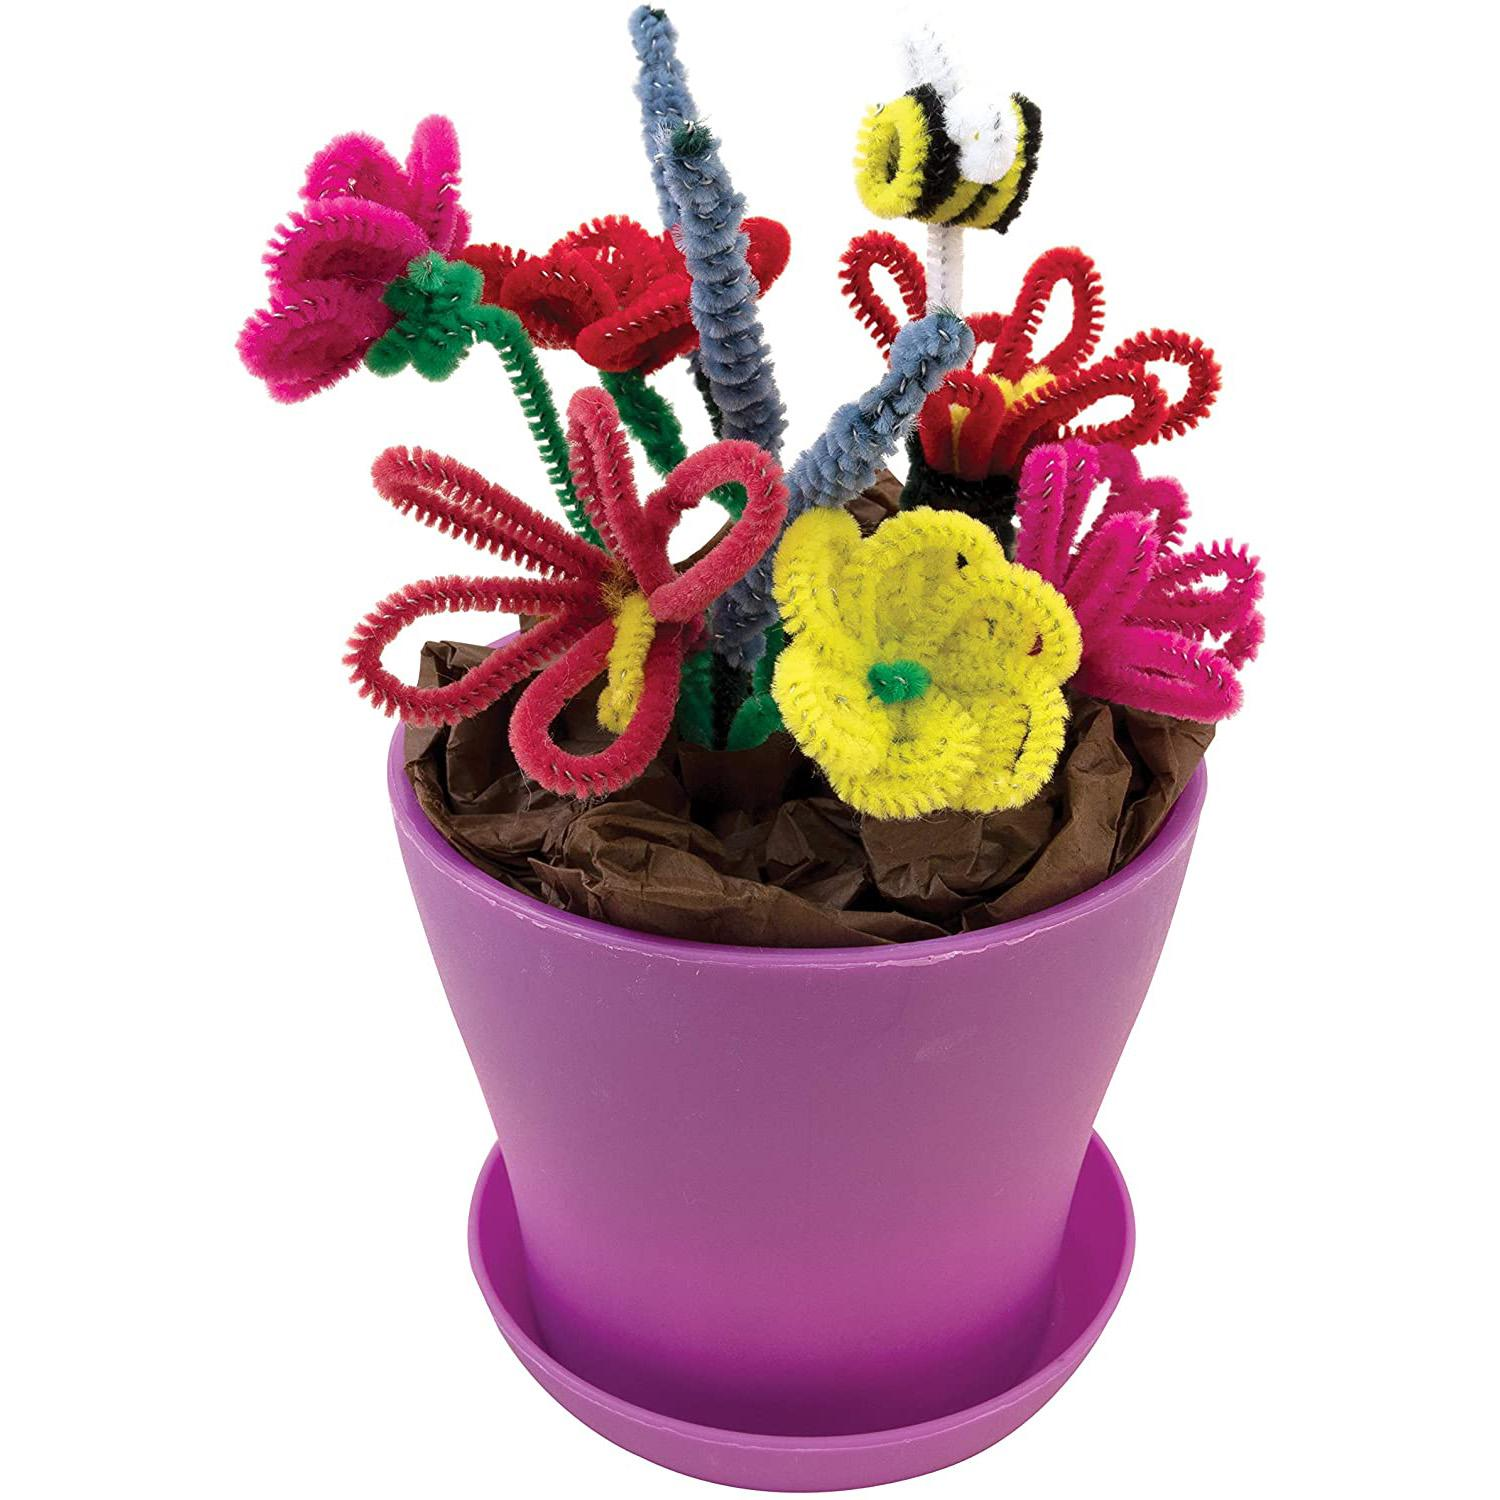 100 Creativity Street Chenille Pipe Cleaners for $1.98